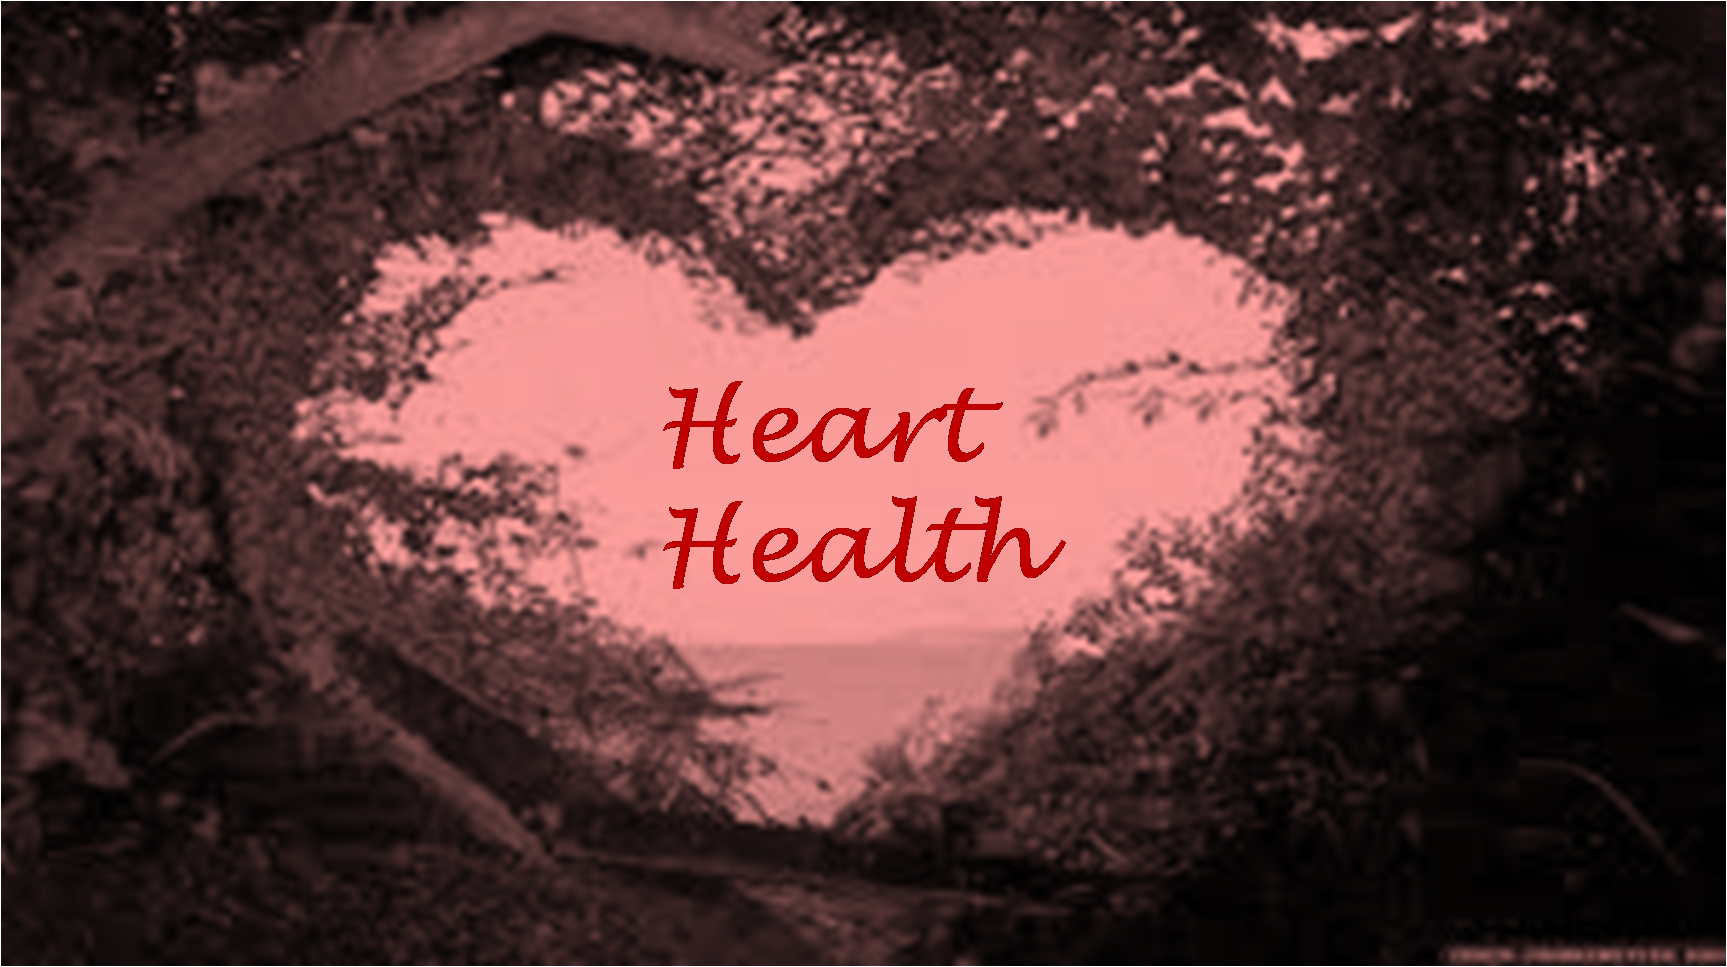 Regular Blood Flow Ensures Good Heart Health